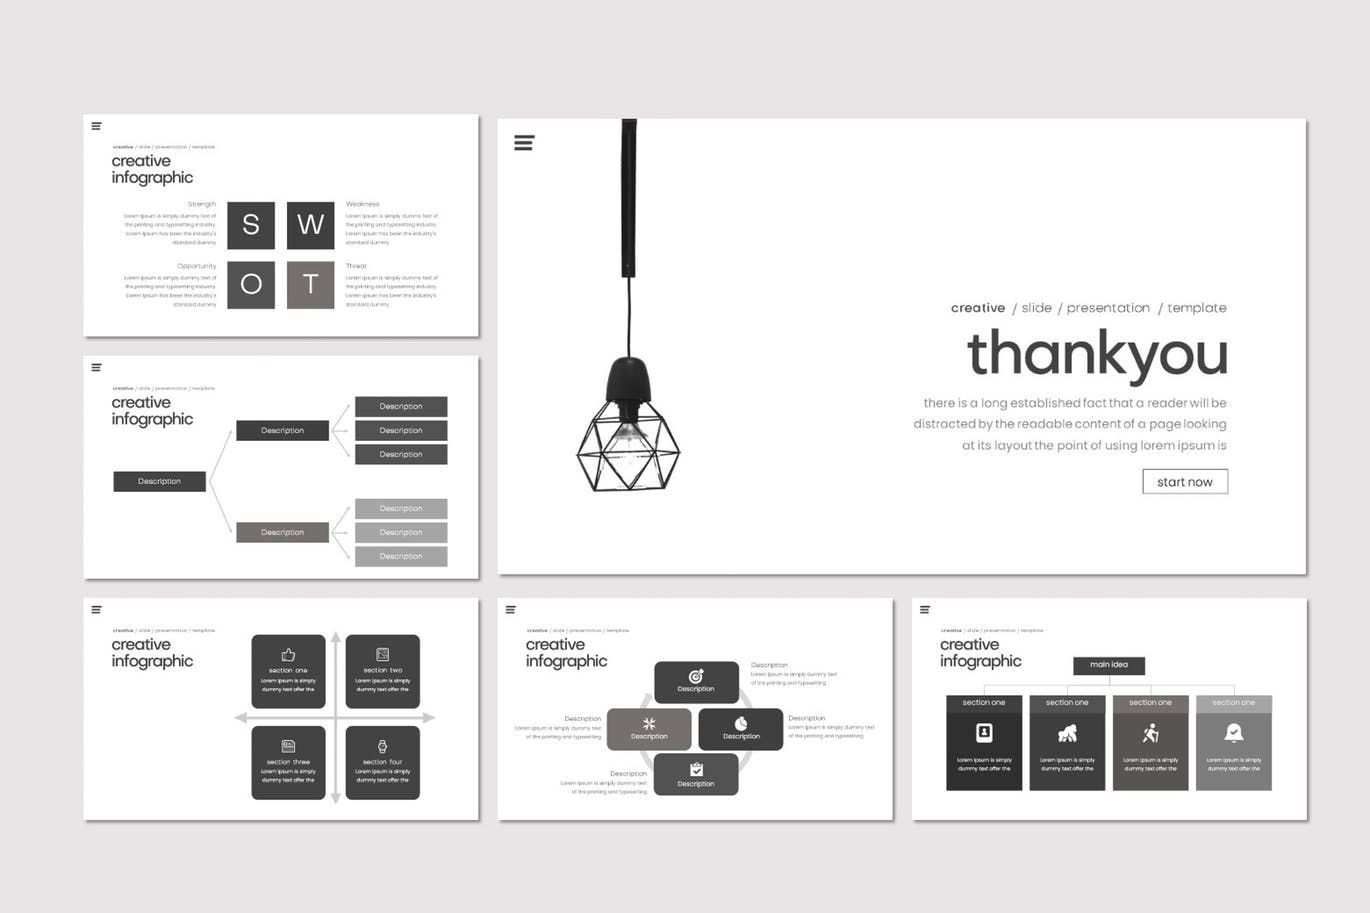 Kondese - PowerPoint Template, Slide 5, 07878, Presentation Templates — PoweredTemplate.com